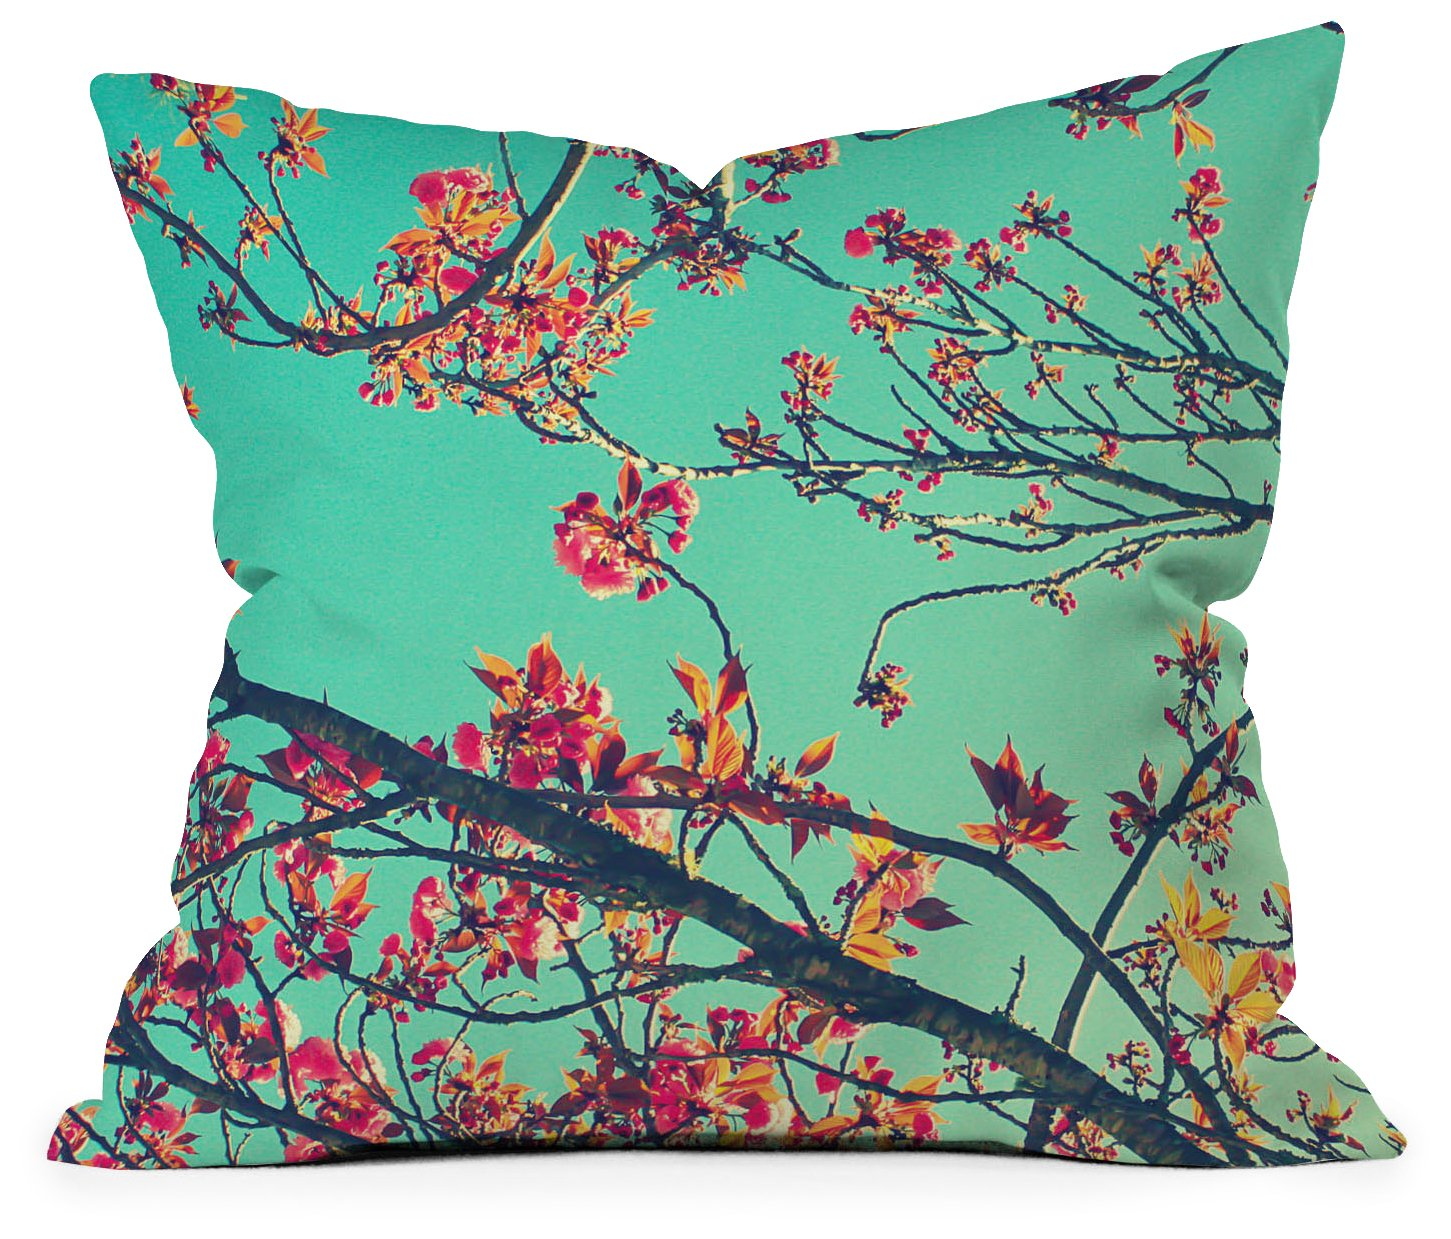 Deny Designs Shannon Clark Love Under The Stars Throw Pillow, 16 x 16 14005-thpo16